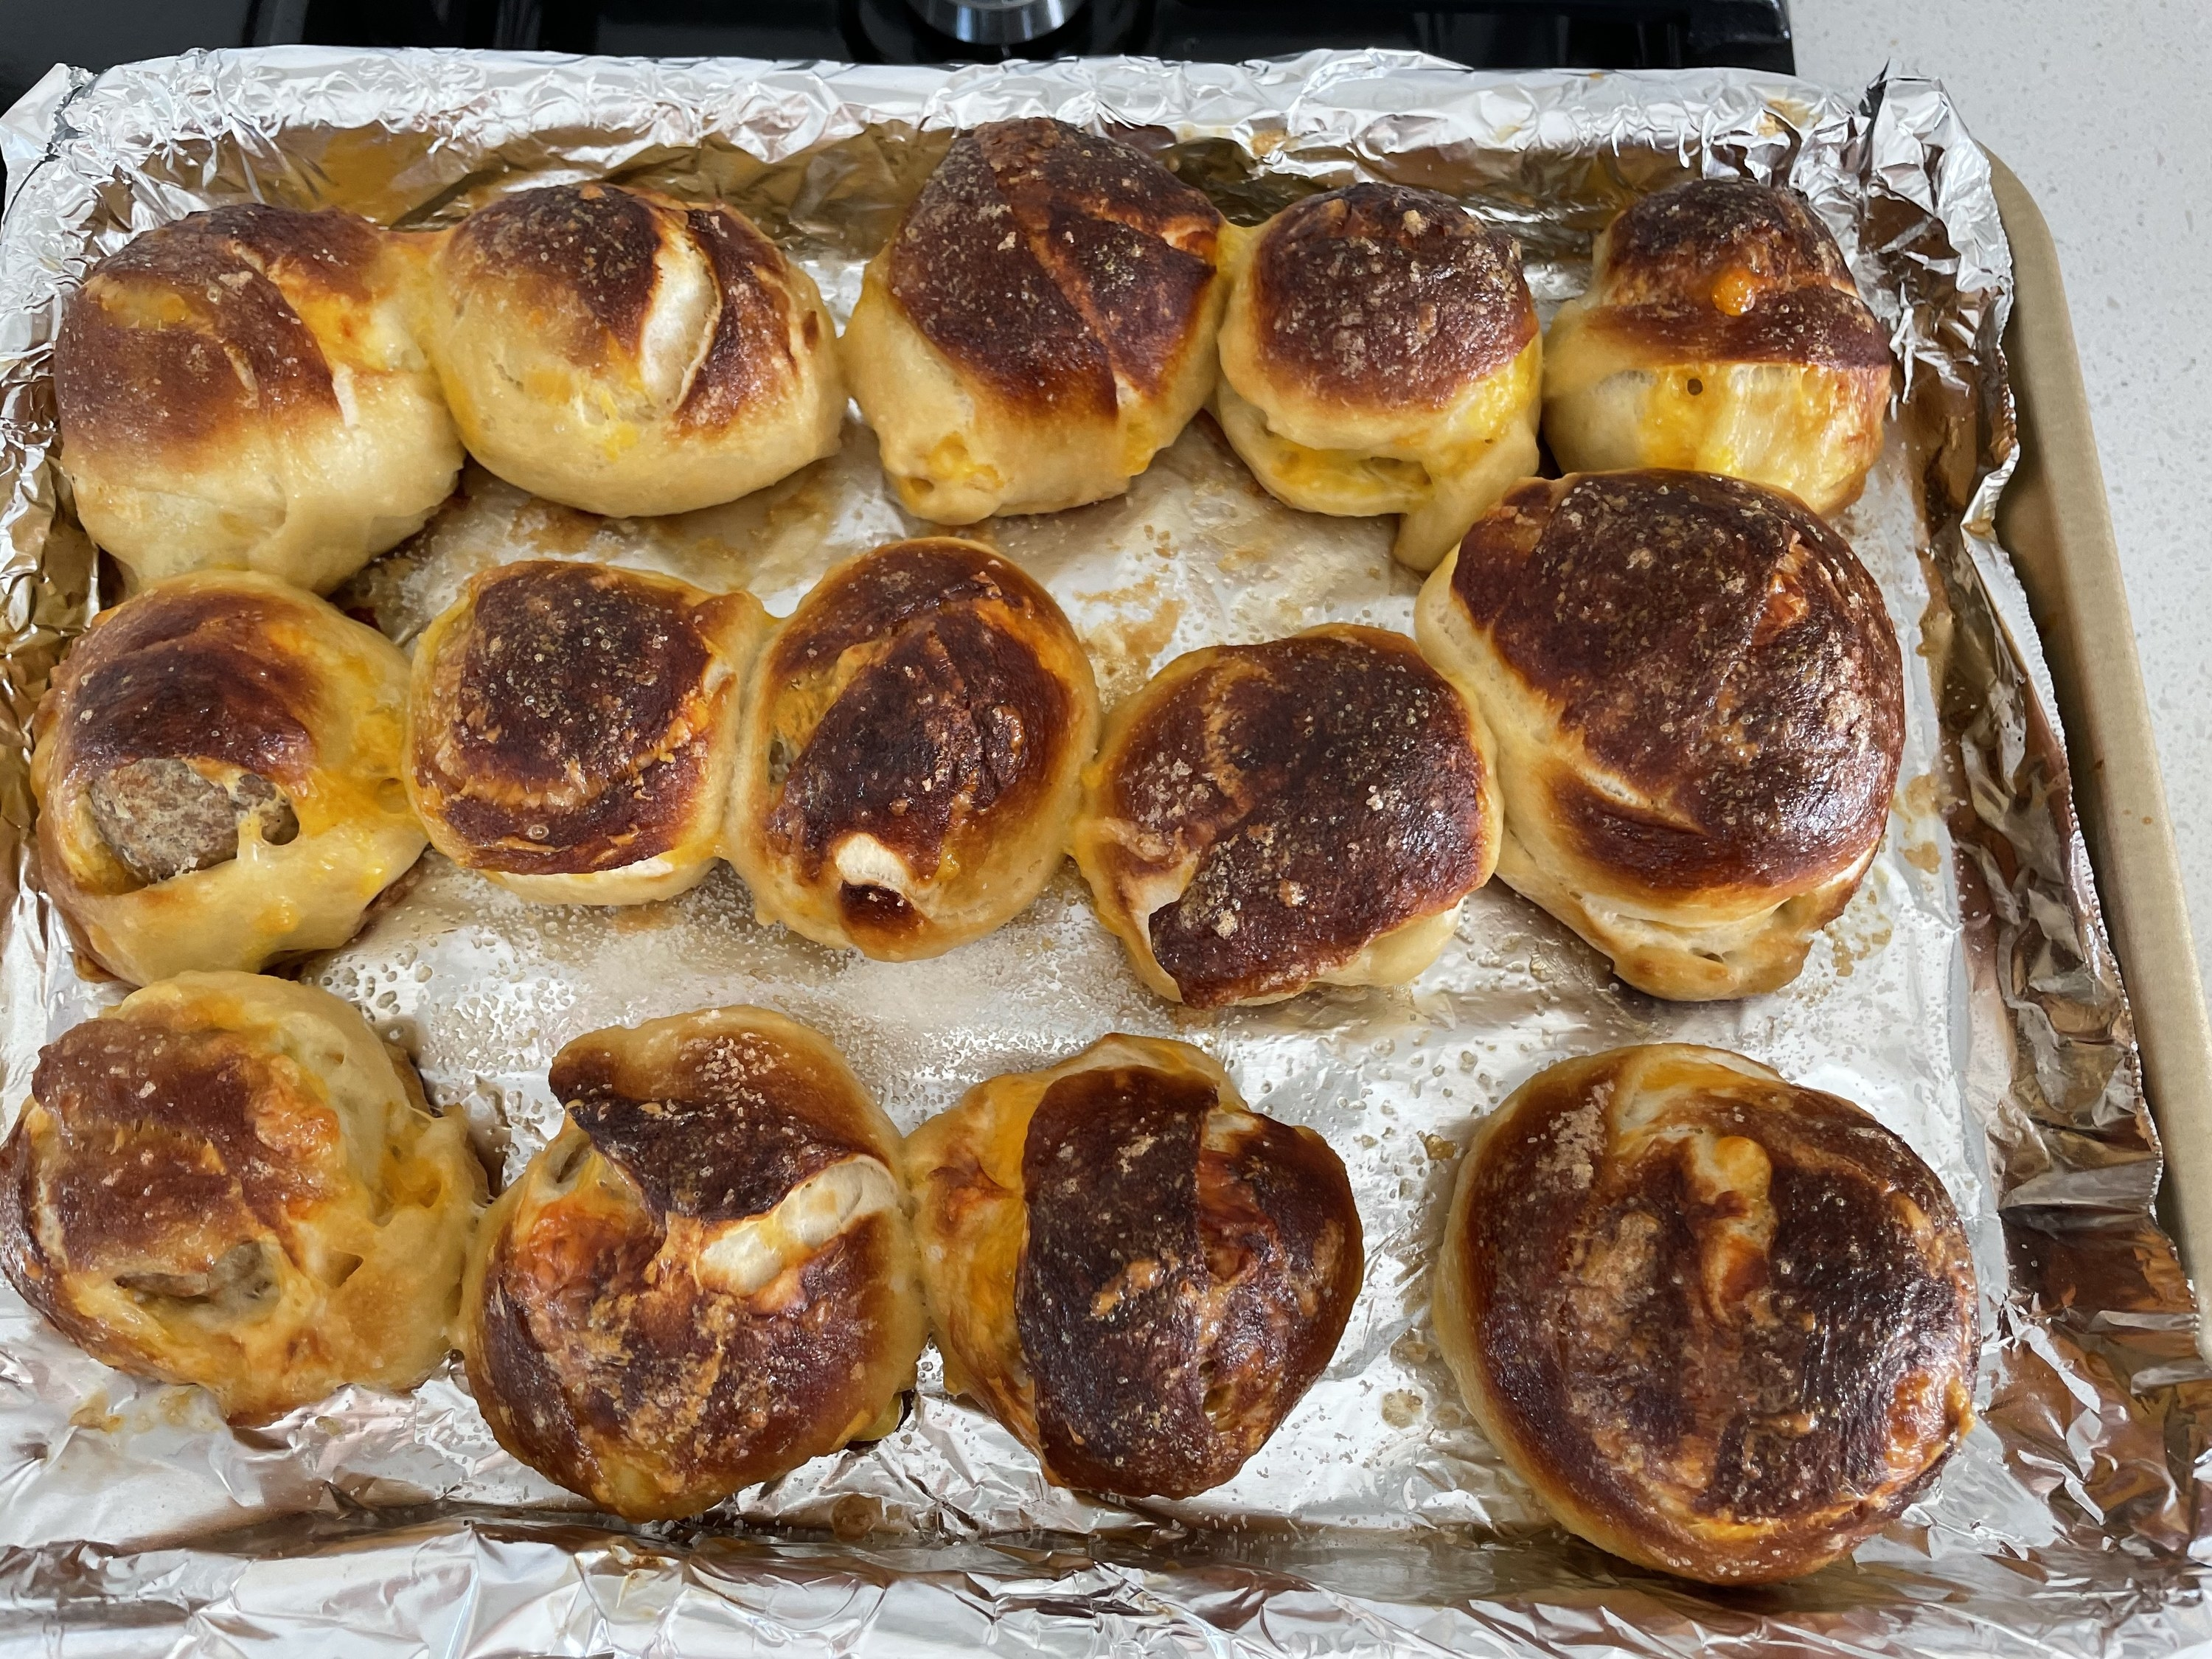 Finished pretzel dough balls, out of the oven